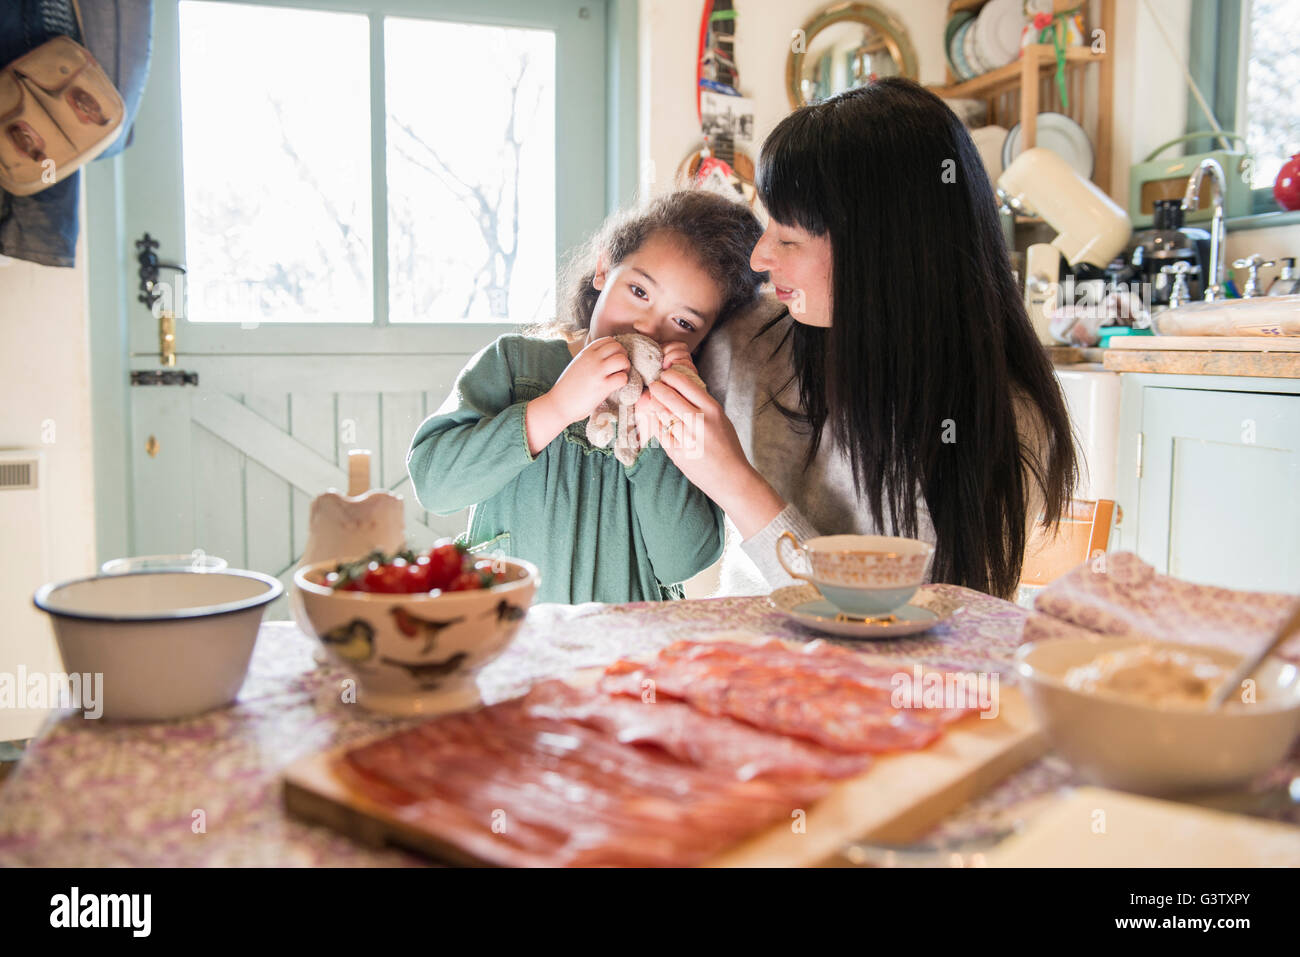 A six year old girl being comforted by her mother at the dinner table. - Stock Image